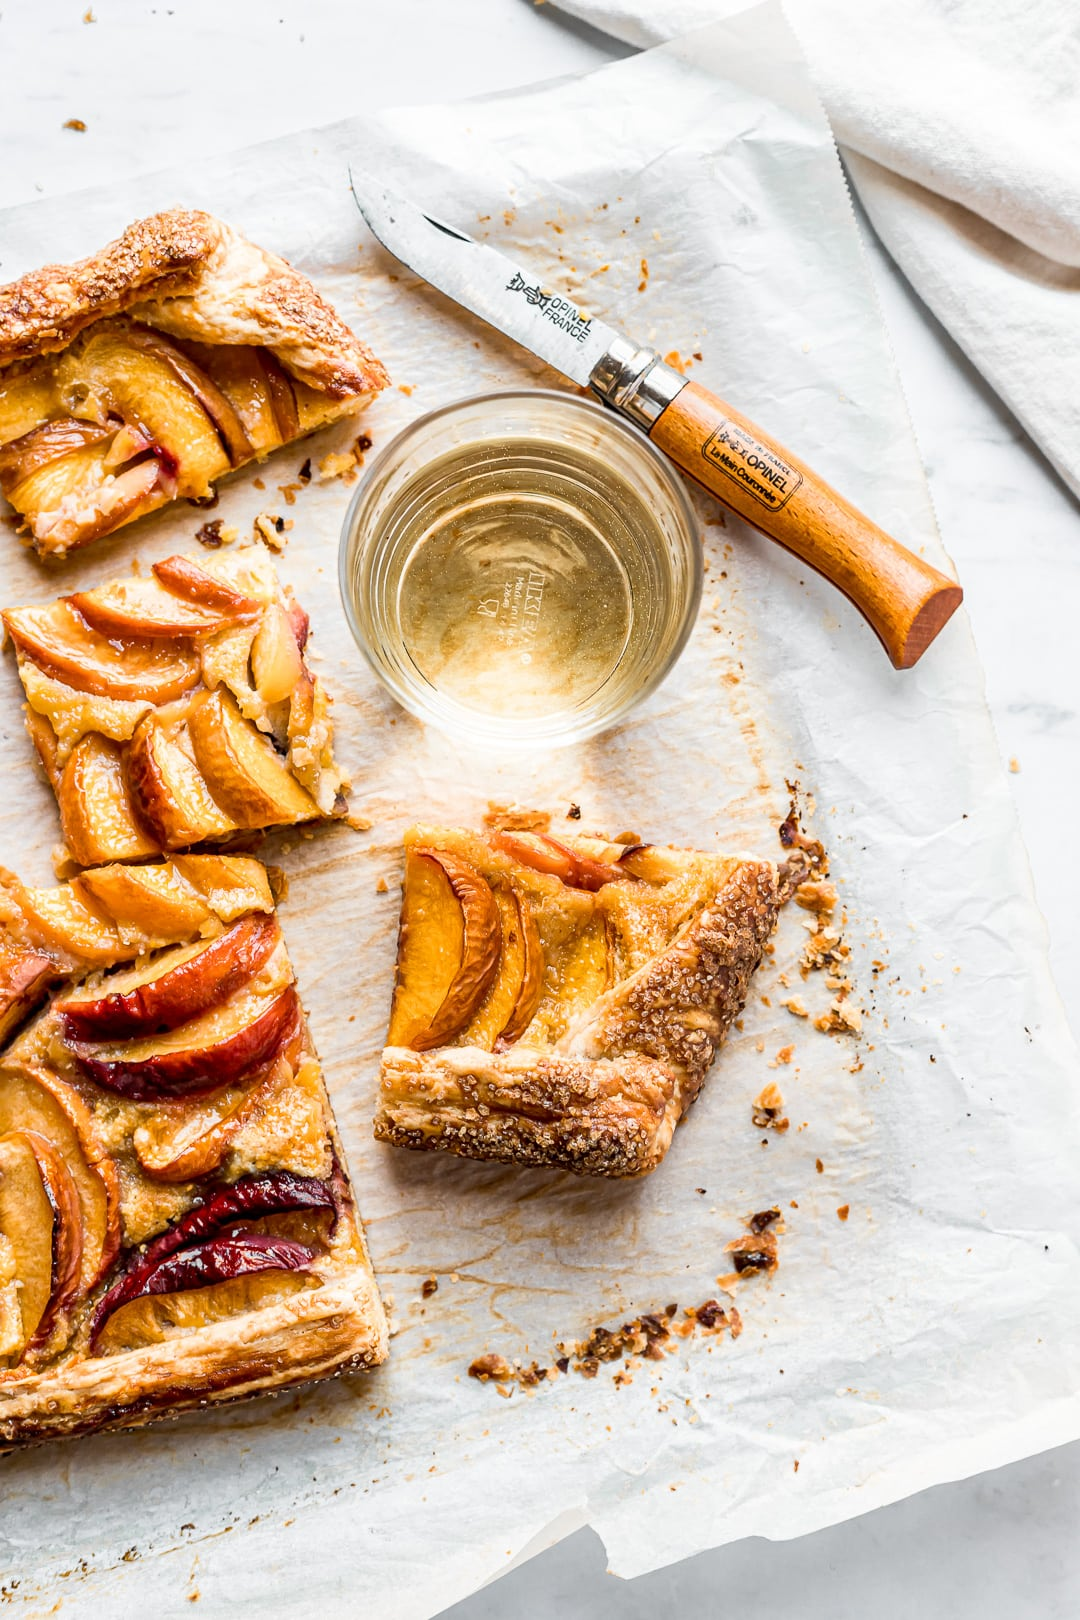 Peach galette slices on parchment paper and a cutting board with white wine and knife nearby